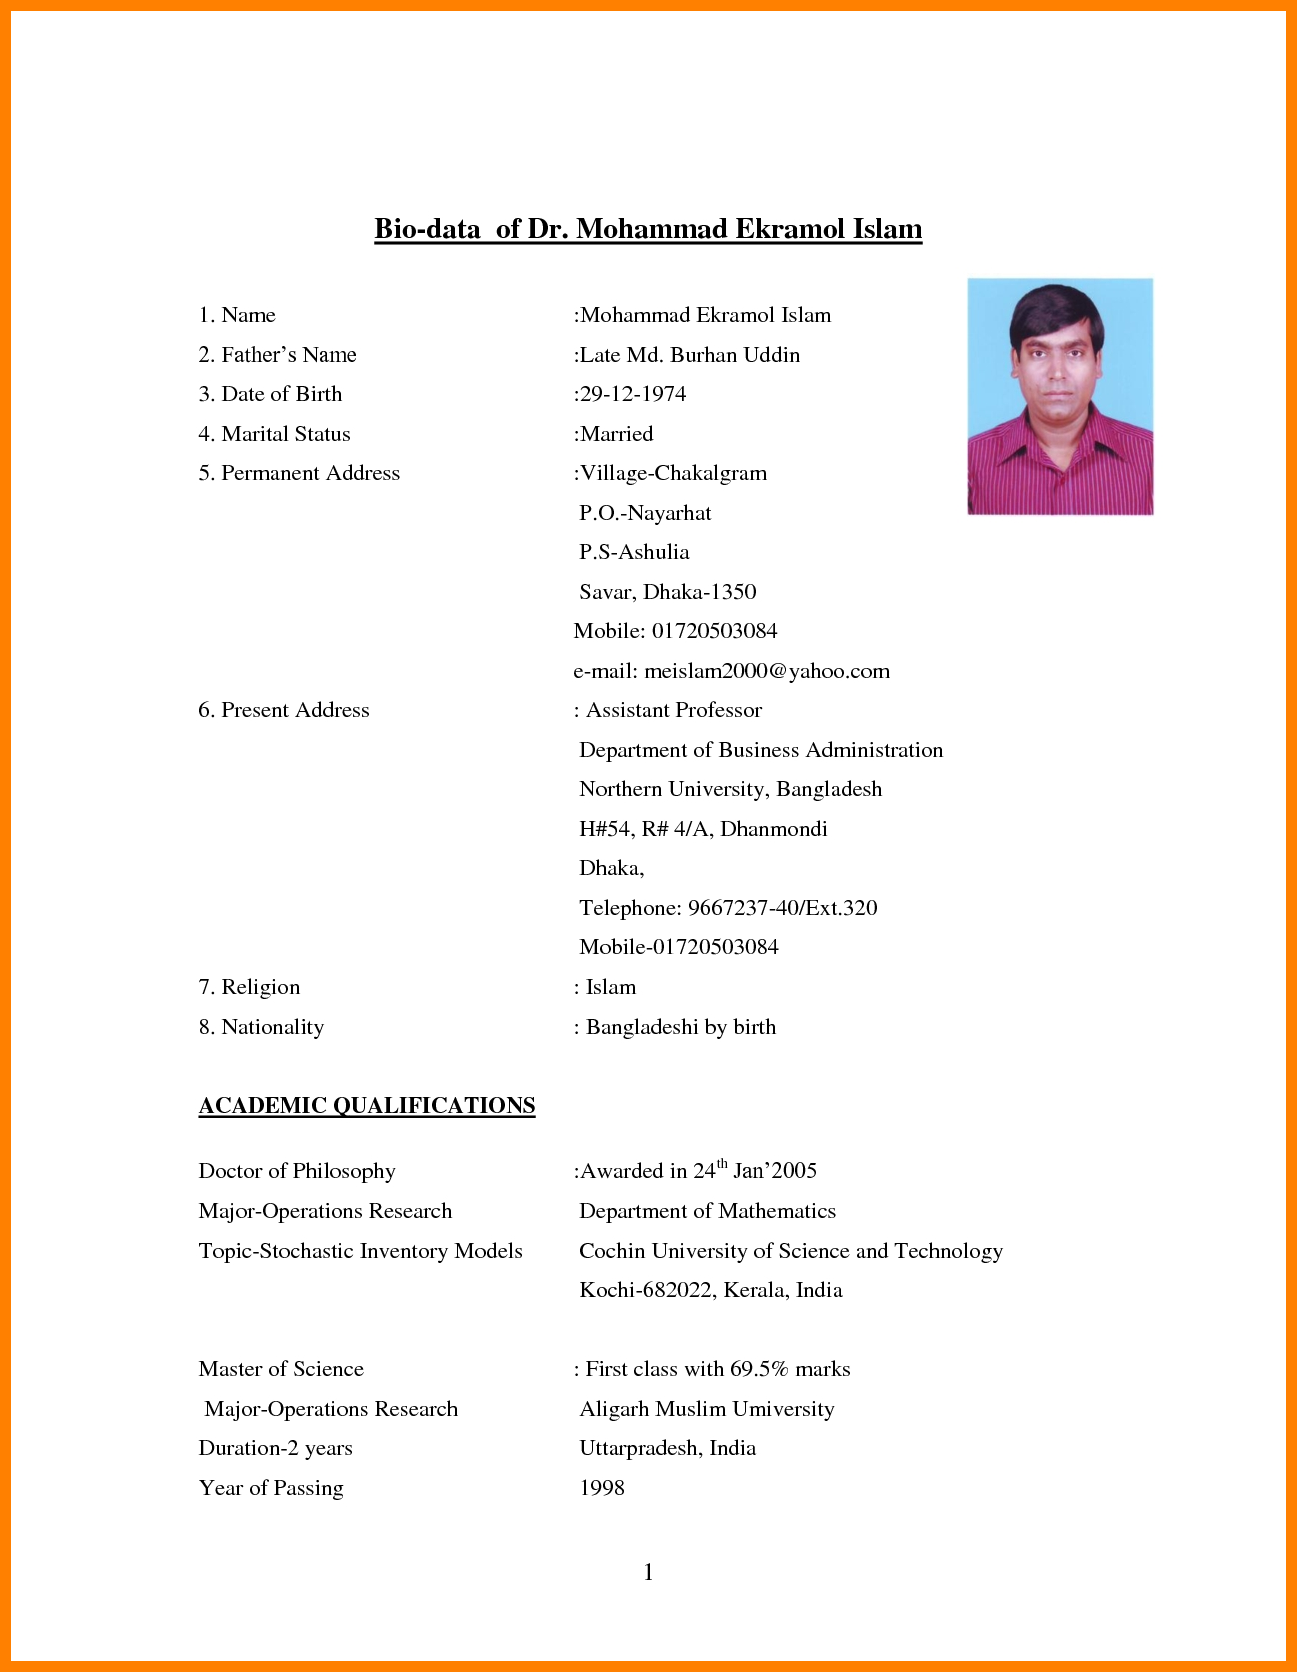 Hybrid Resume Examples Adorable 5 Biodata Format For Job Word  Sephora Resume  Kp  Pinterest